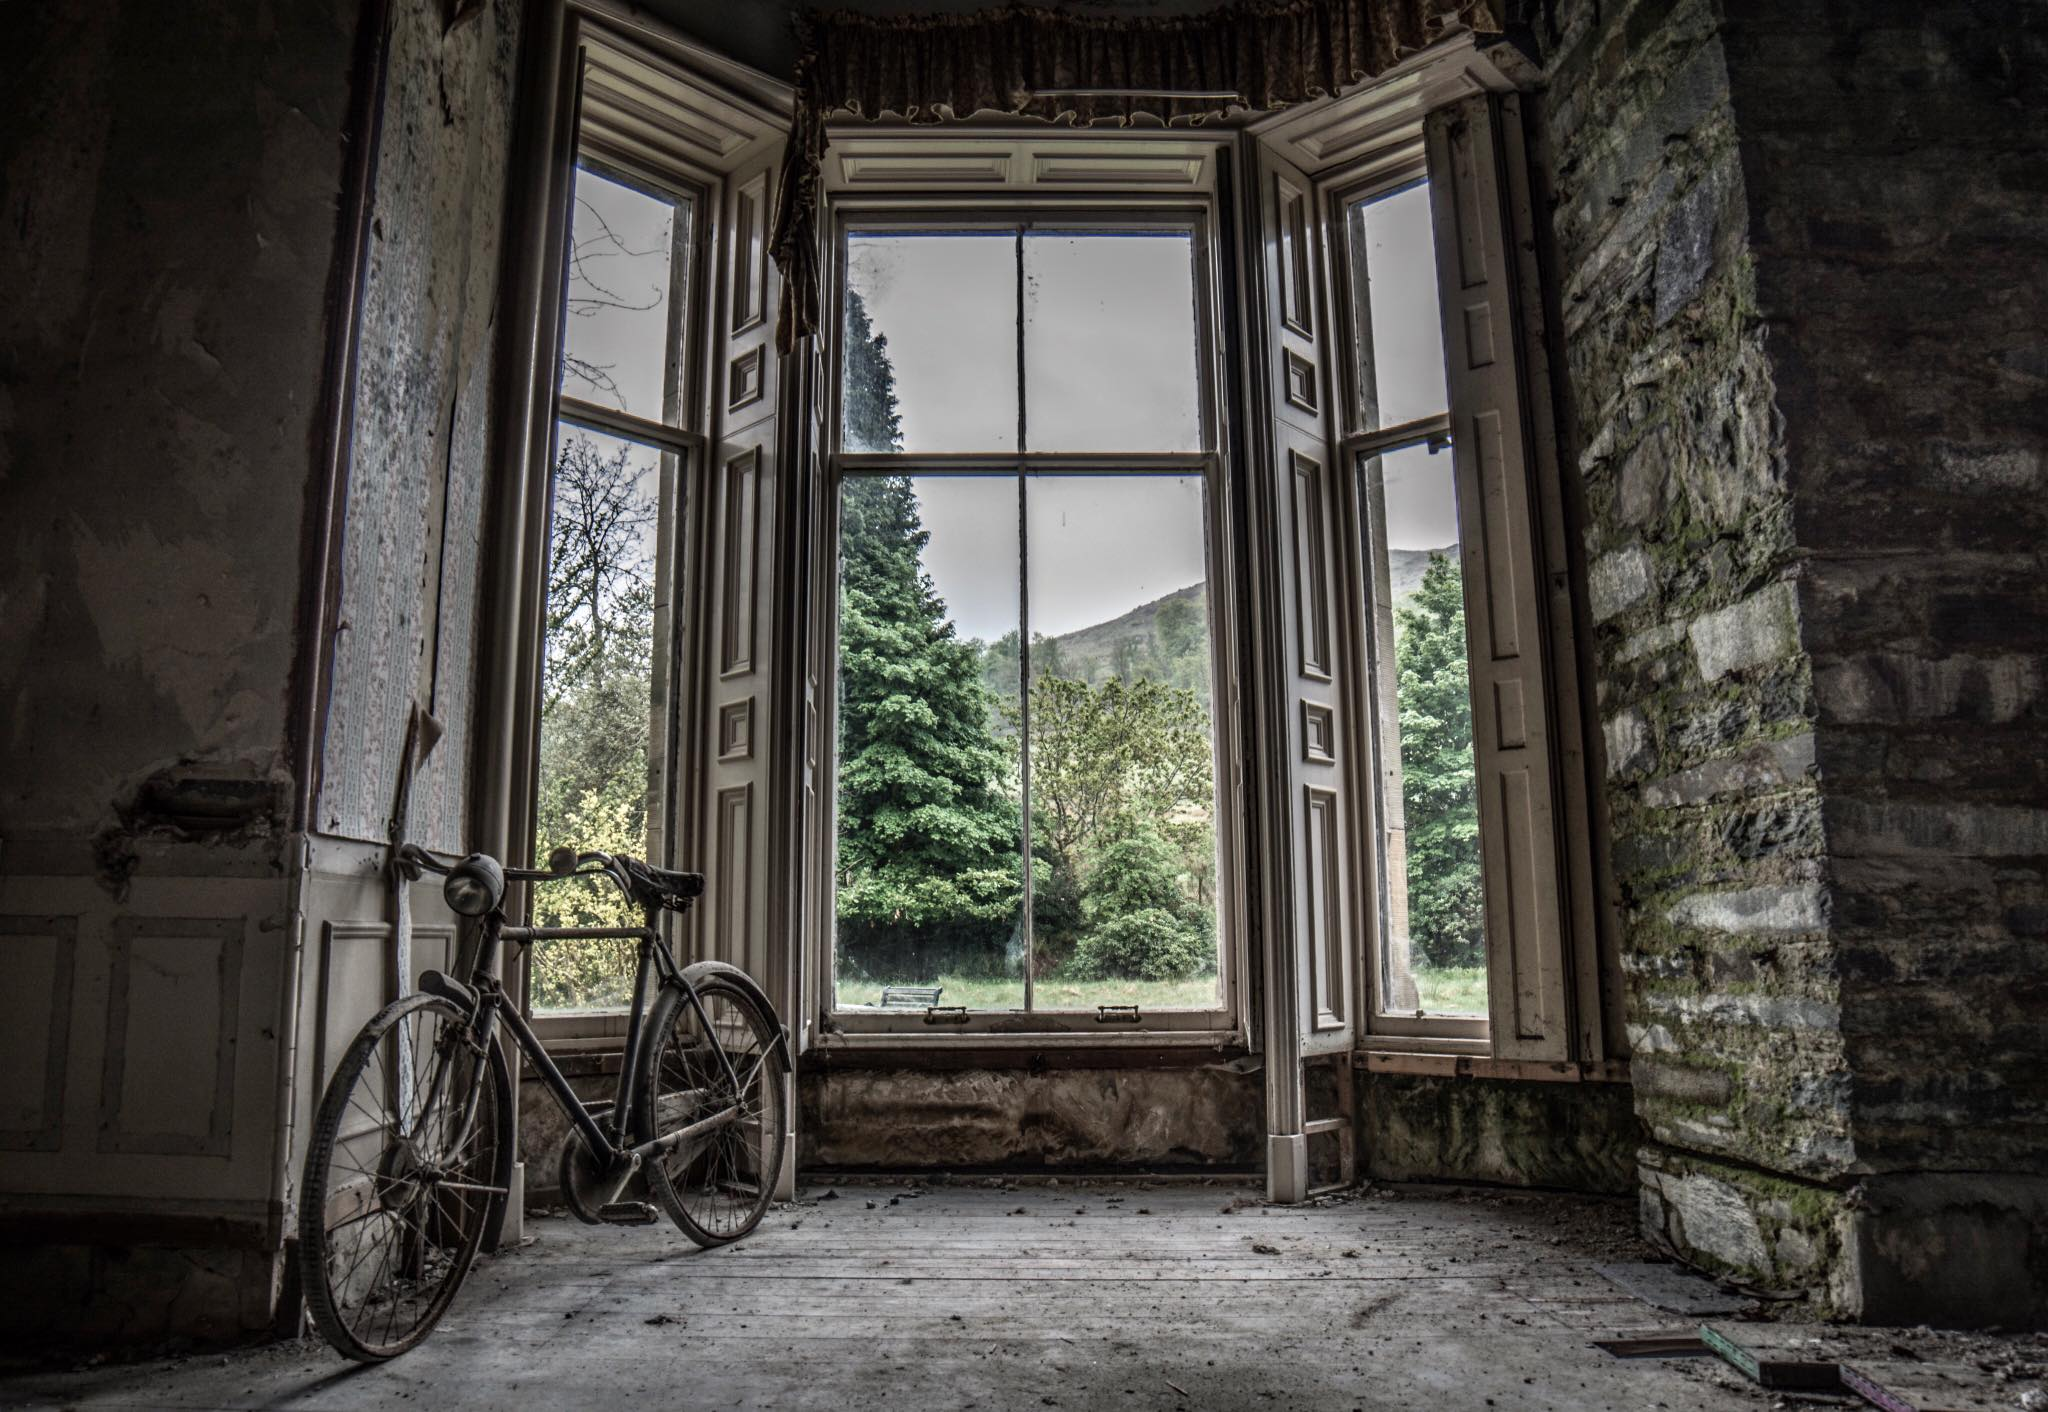 Stunning photos show abandoned mansion designed by famous